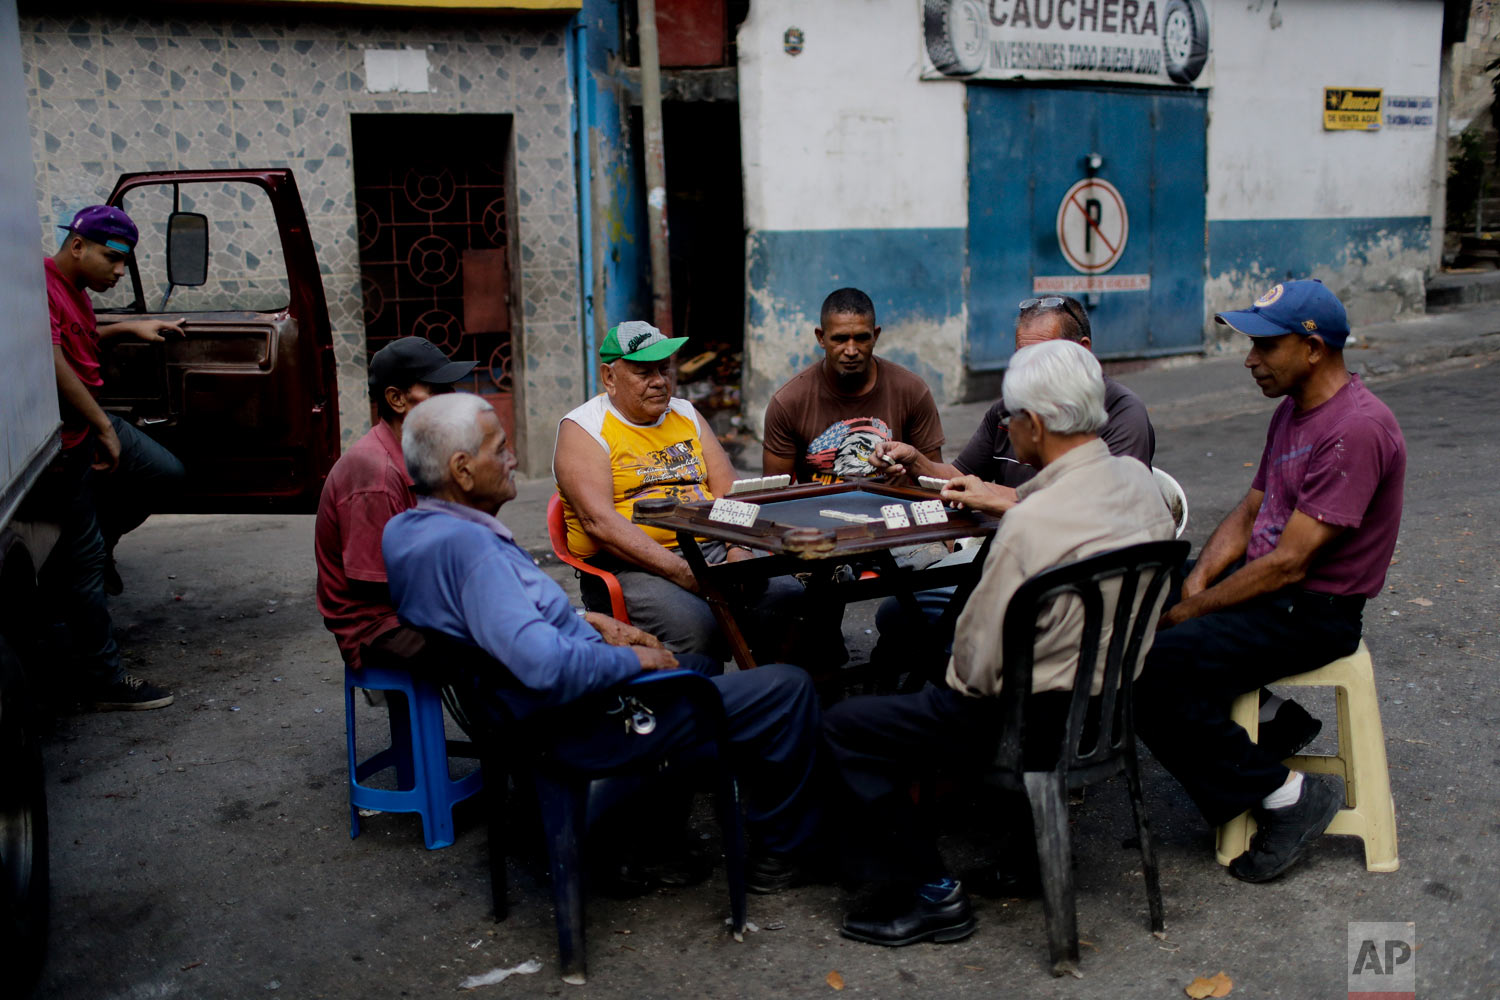 In this March 20, 2019 photo, men play dominos in a street in Caracas, Venezuela. (AP Photo/Natacha Pisarenko)